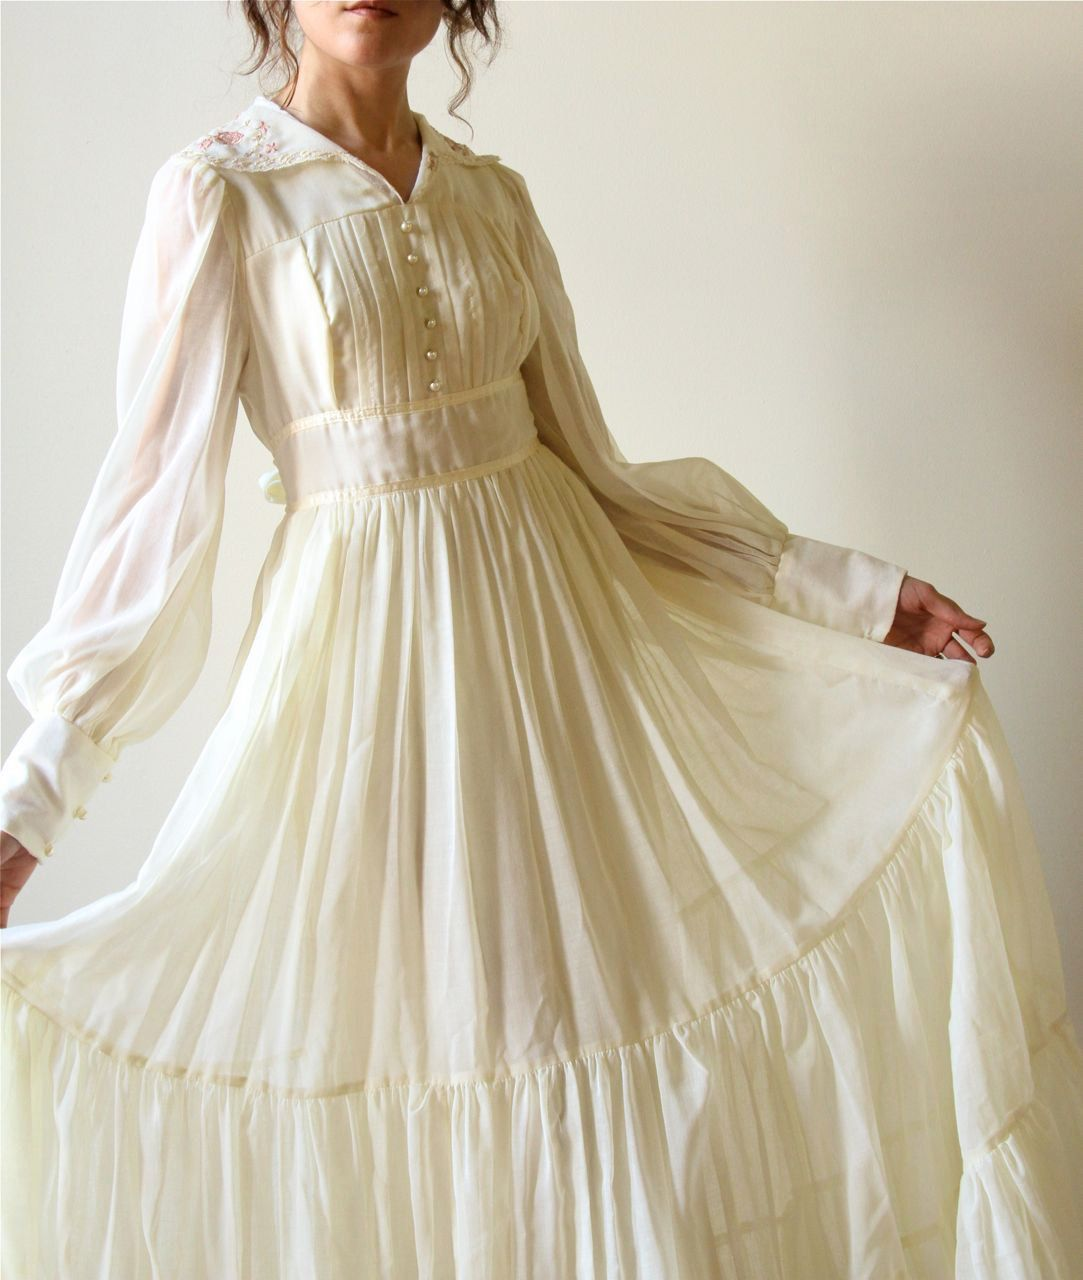 Vintage wedding dresses s vintage dresses u things pinterest